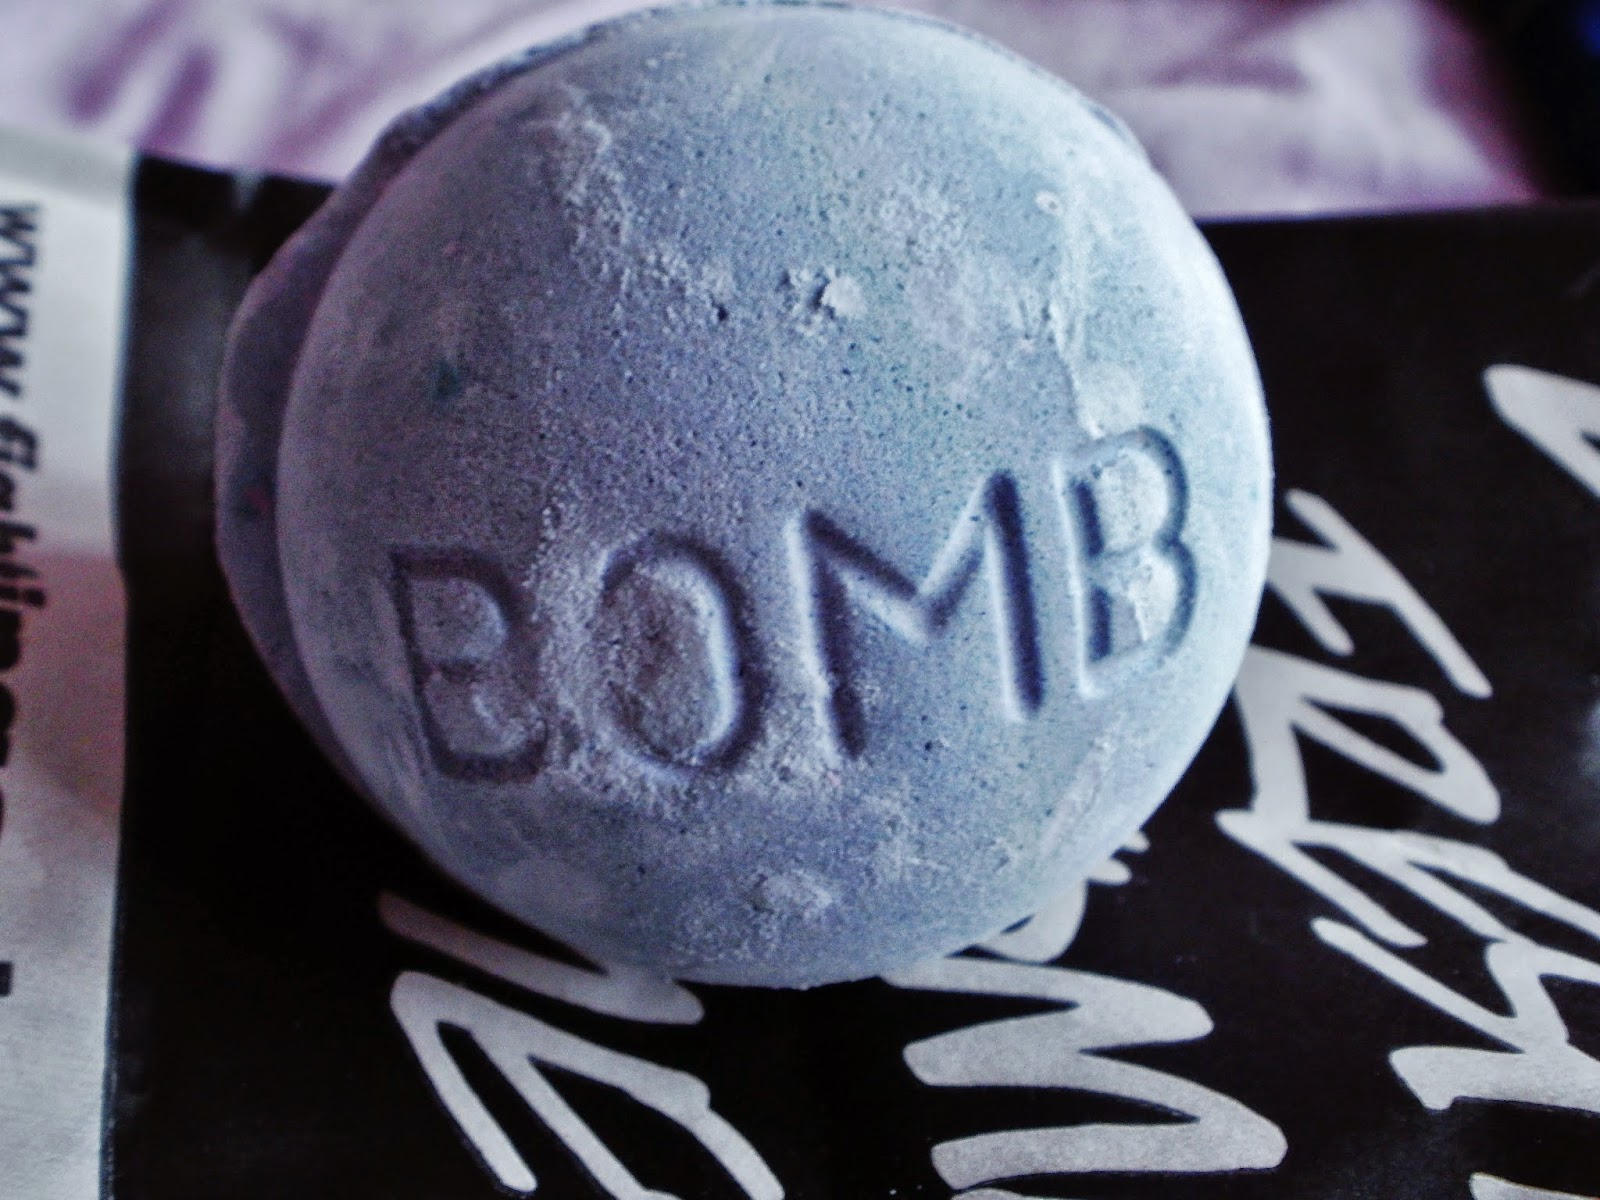 LUSH Blackberry Bath Bomb